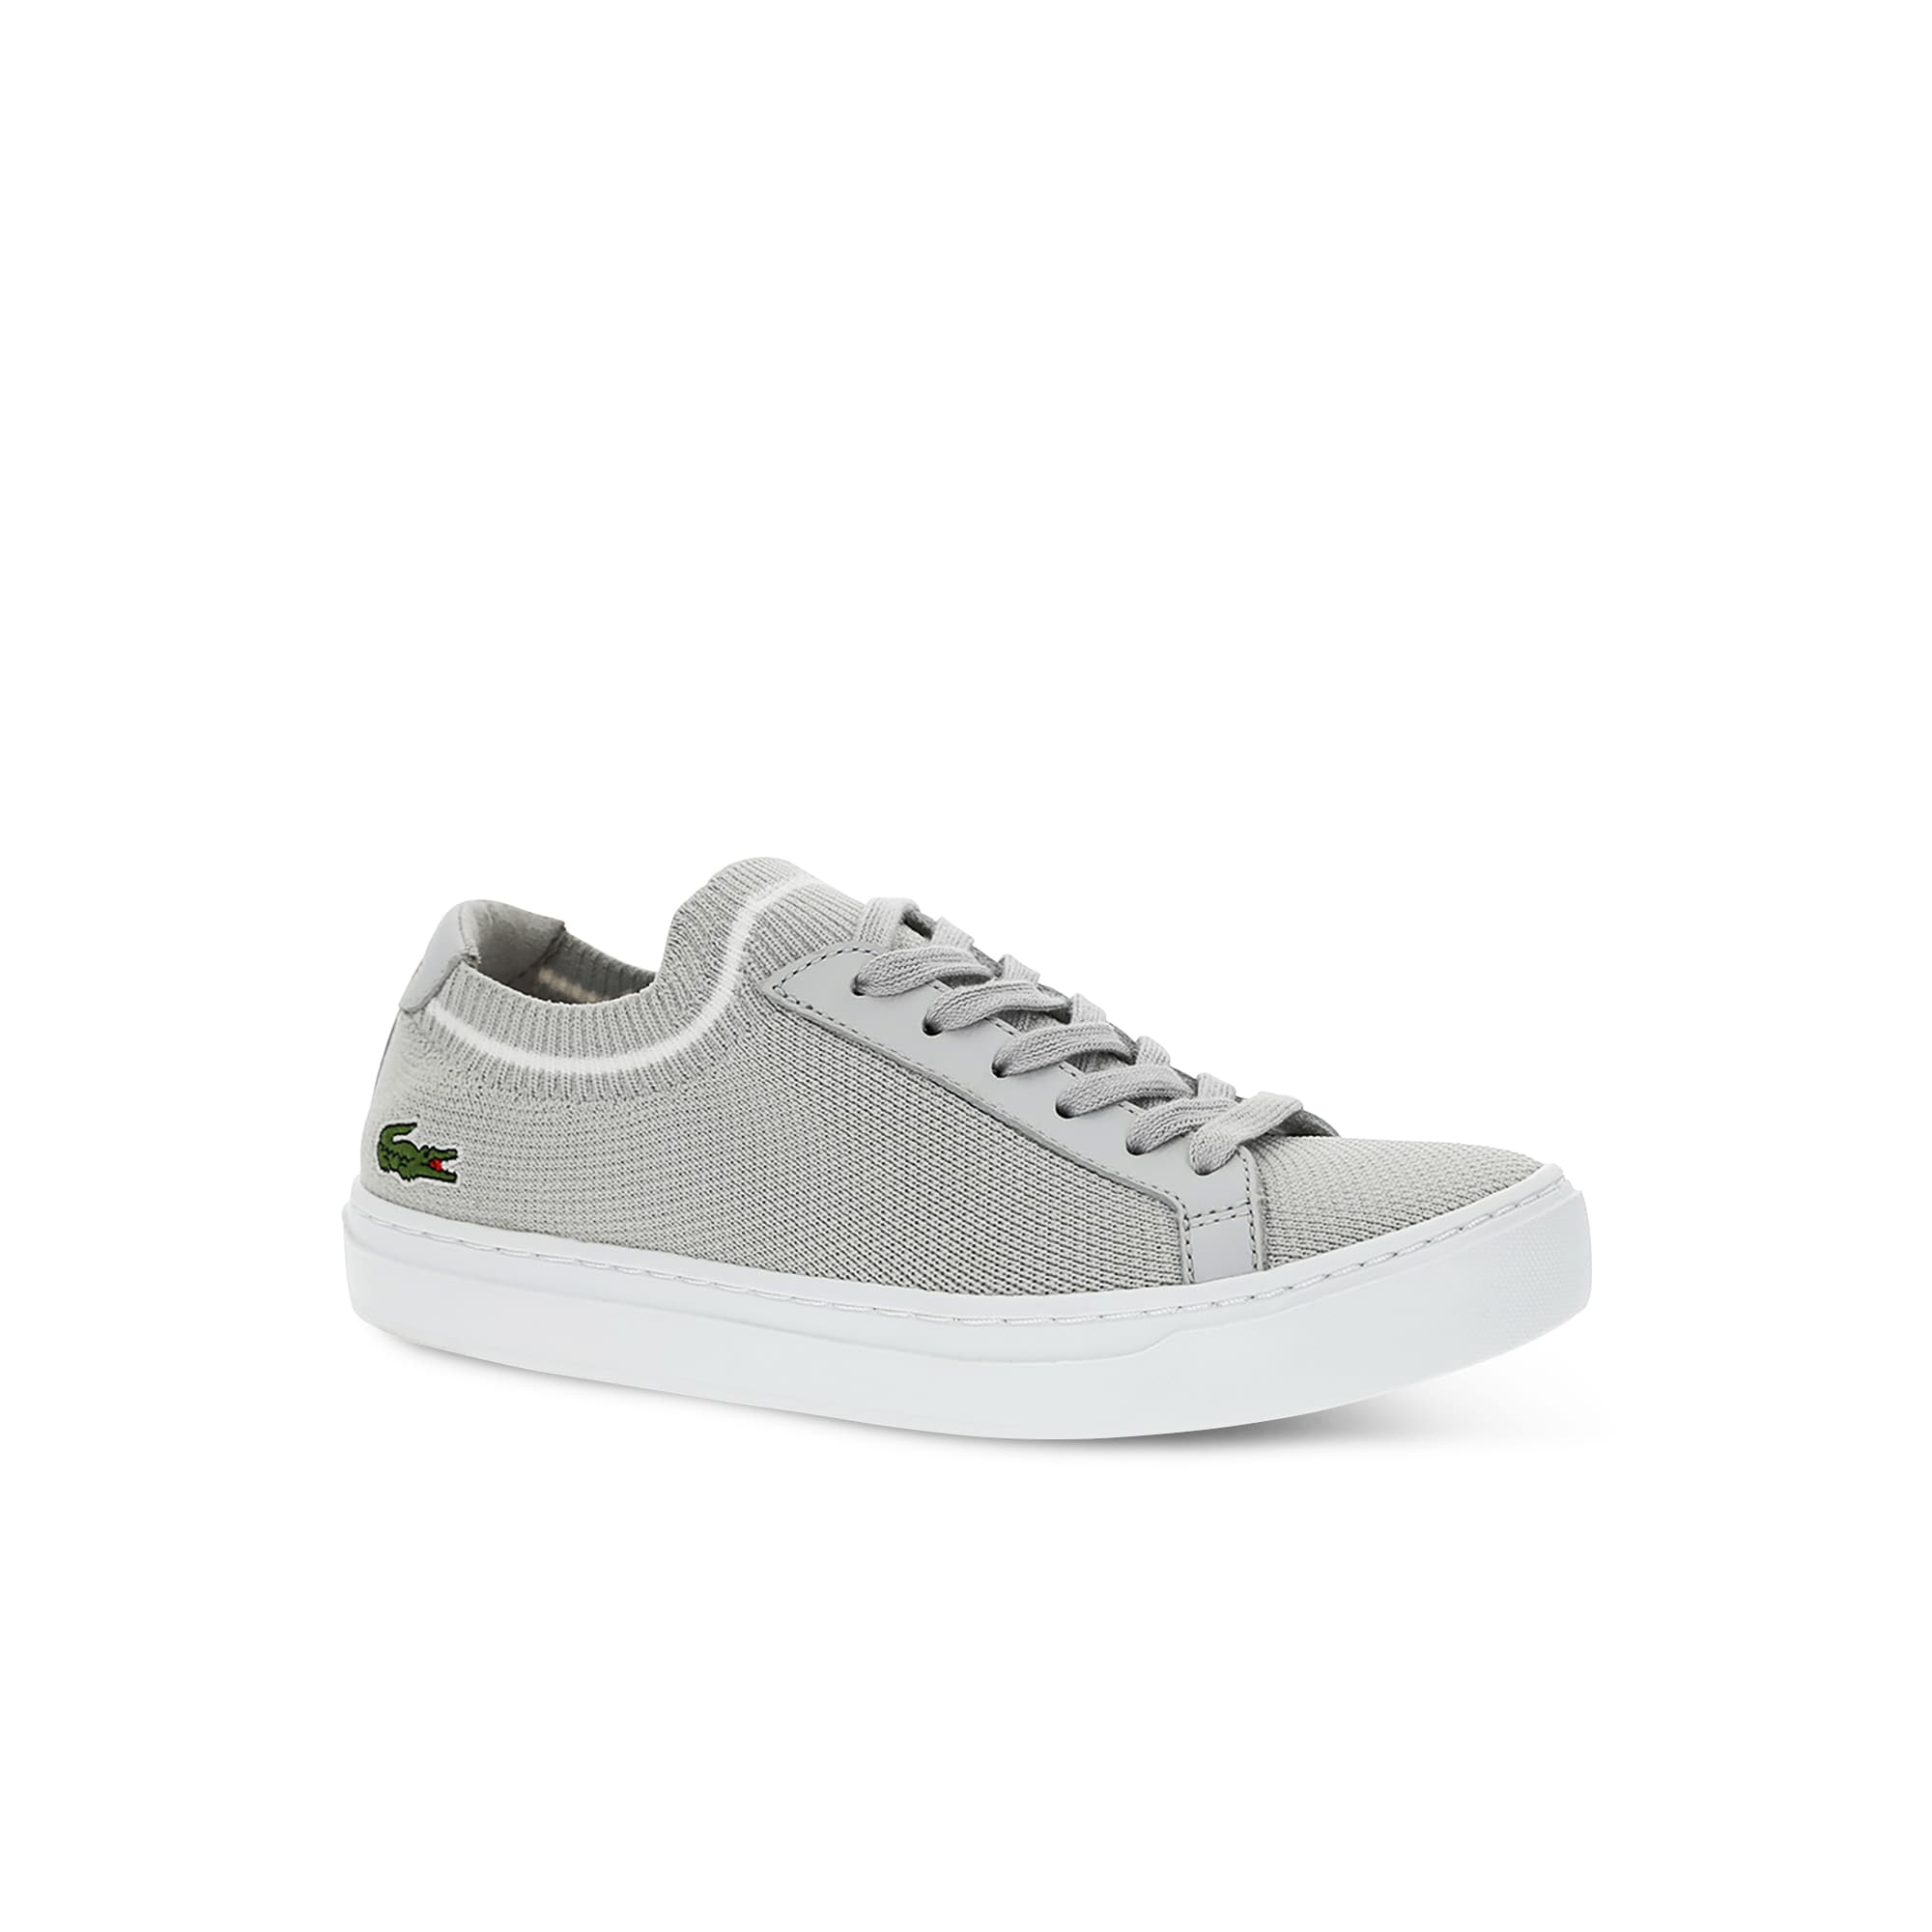 eb65e5141 Lacoste shoes for women  Boots